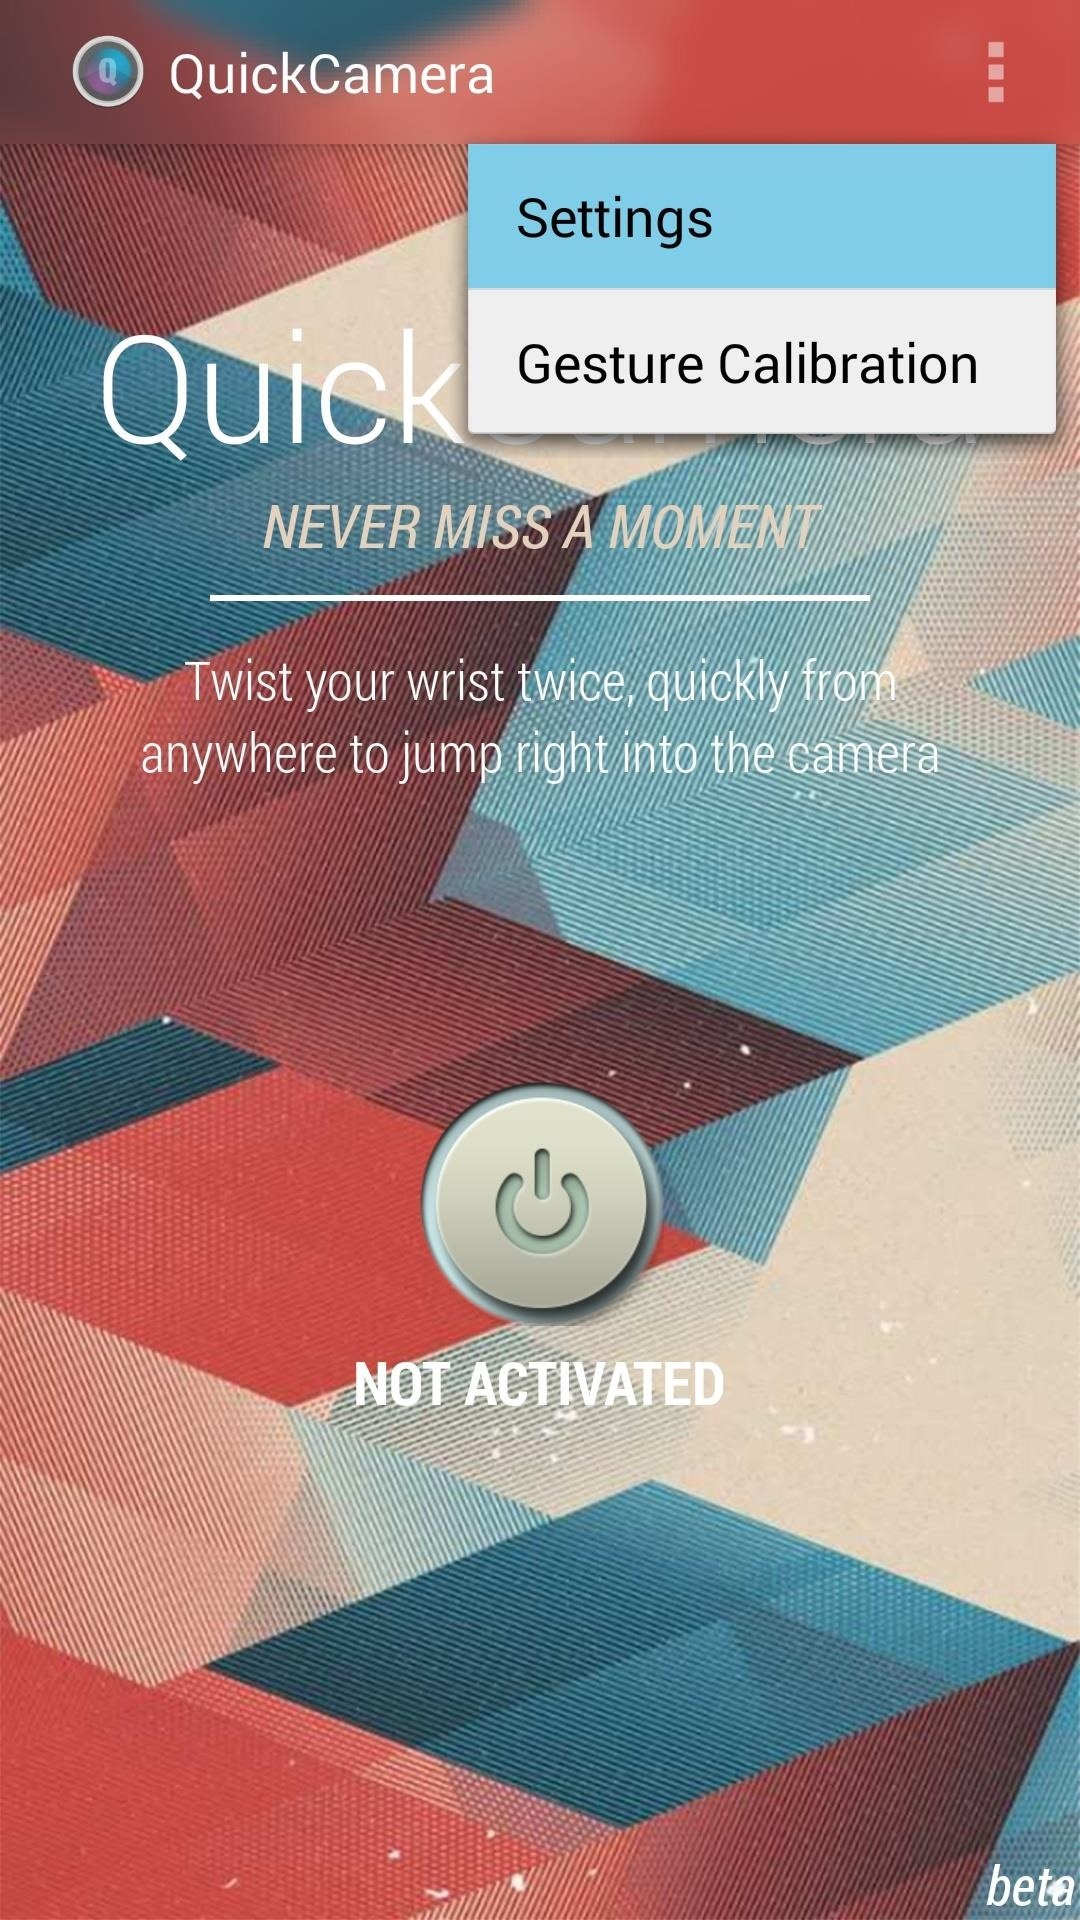 How to Flick Open the Camera App on Your Samsung Galaxy S5